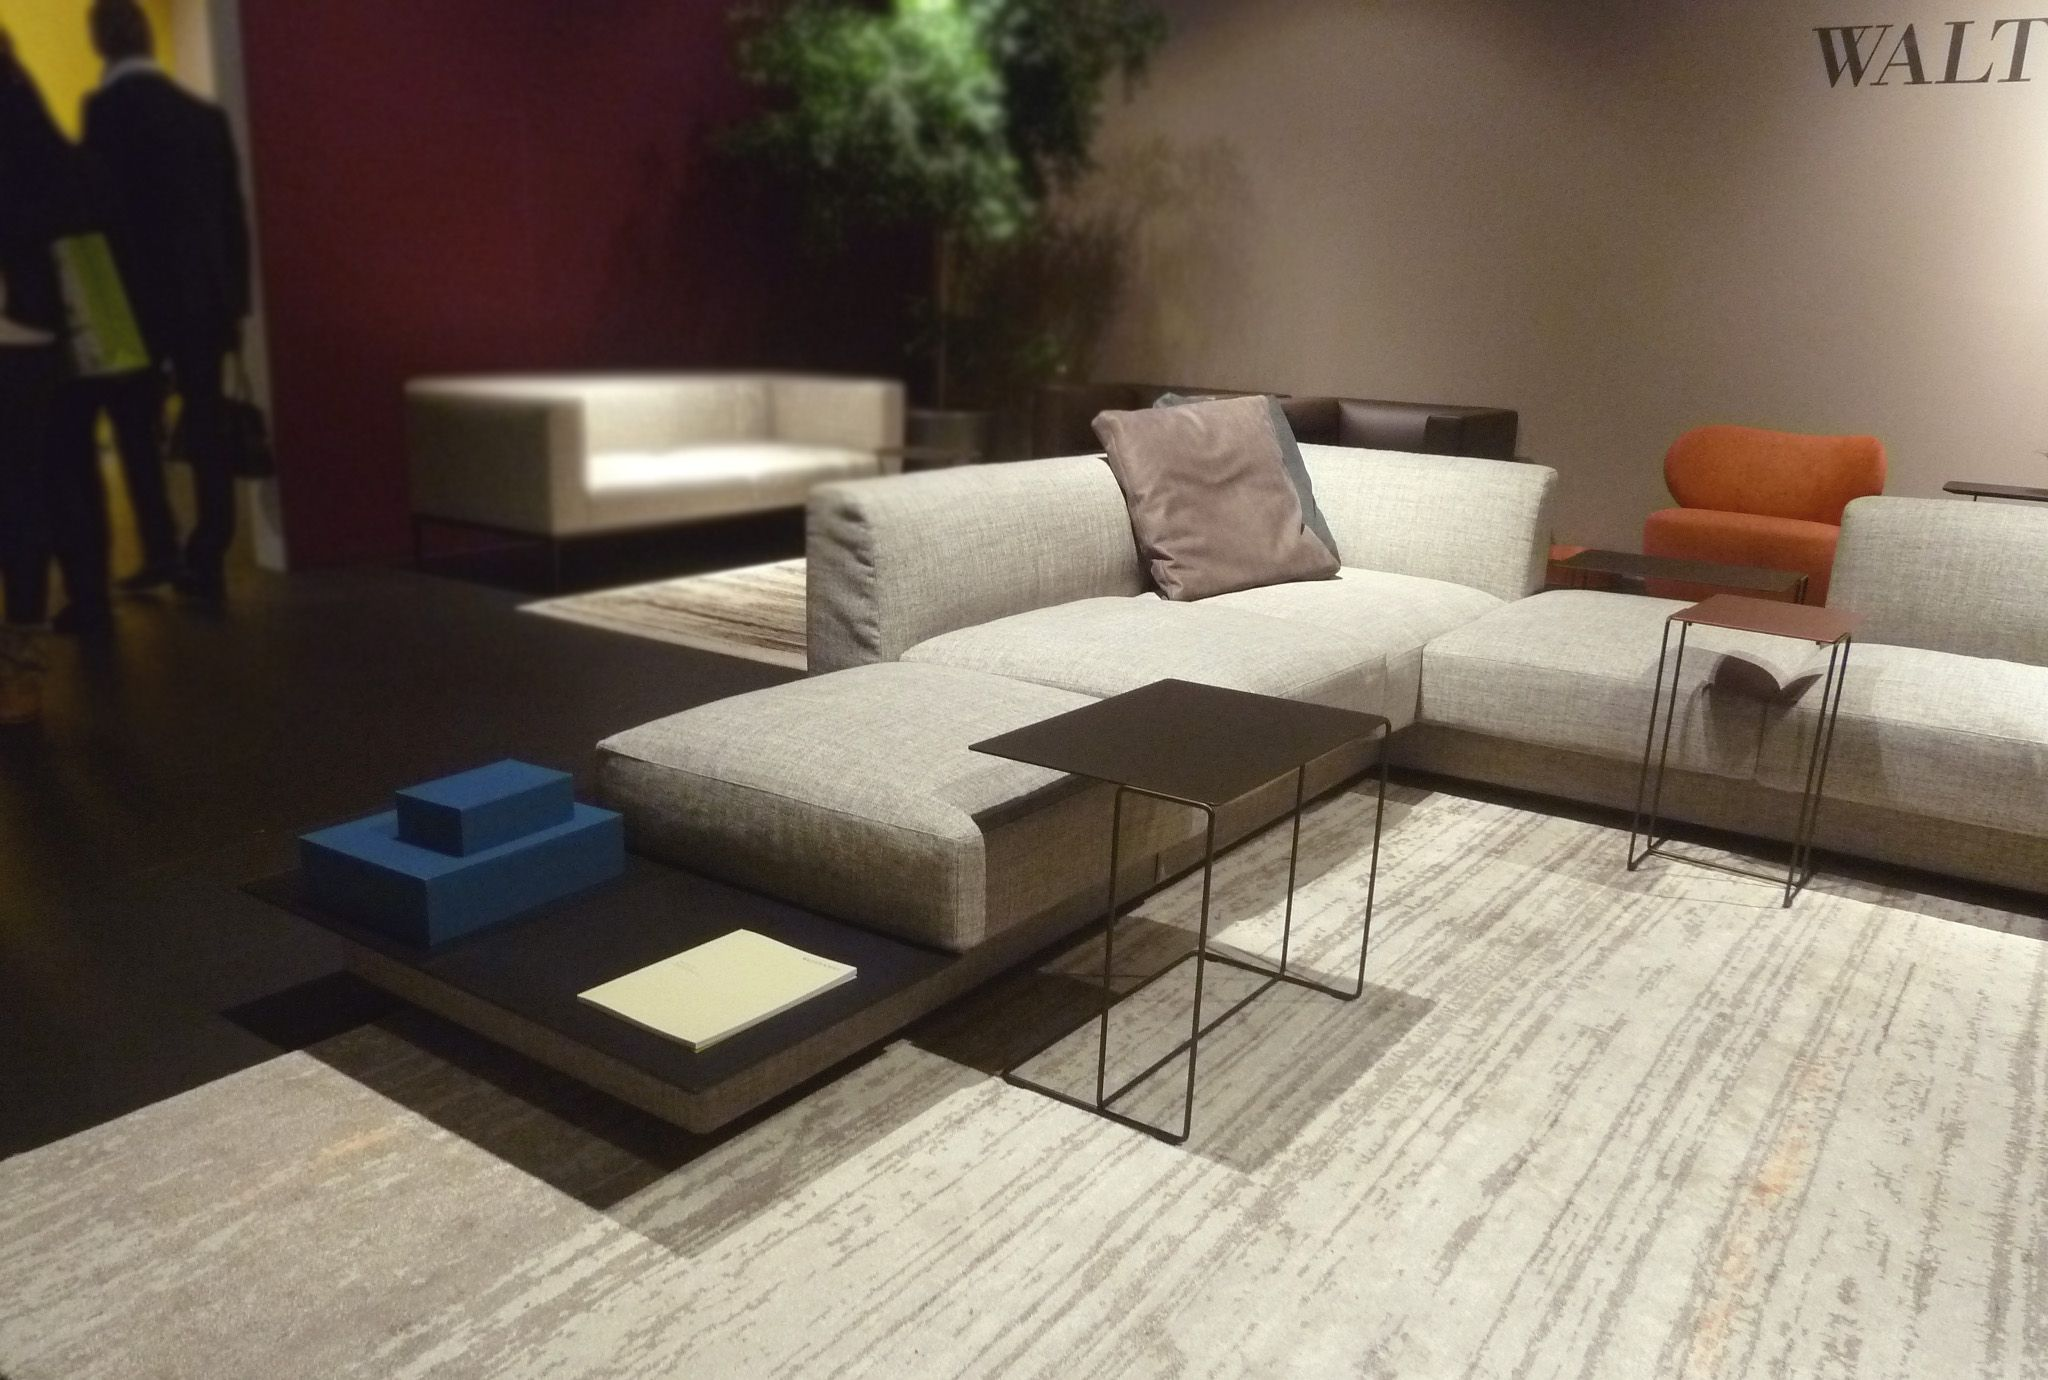 Scp contracts at cologne oki table and yuuto sofa eoos for scp contracts at cologne oki table and yuuto sofa eoos for walter parisarafo Gallery